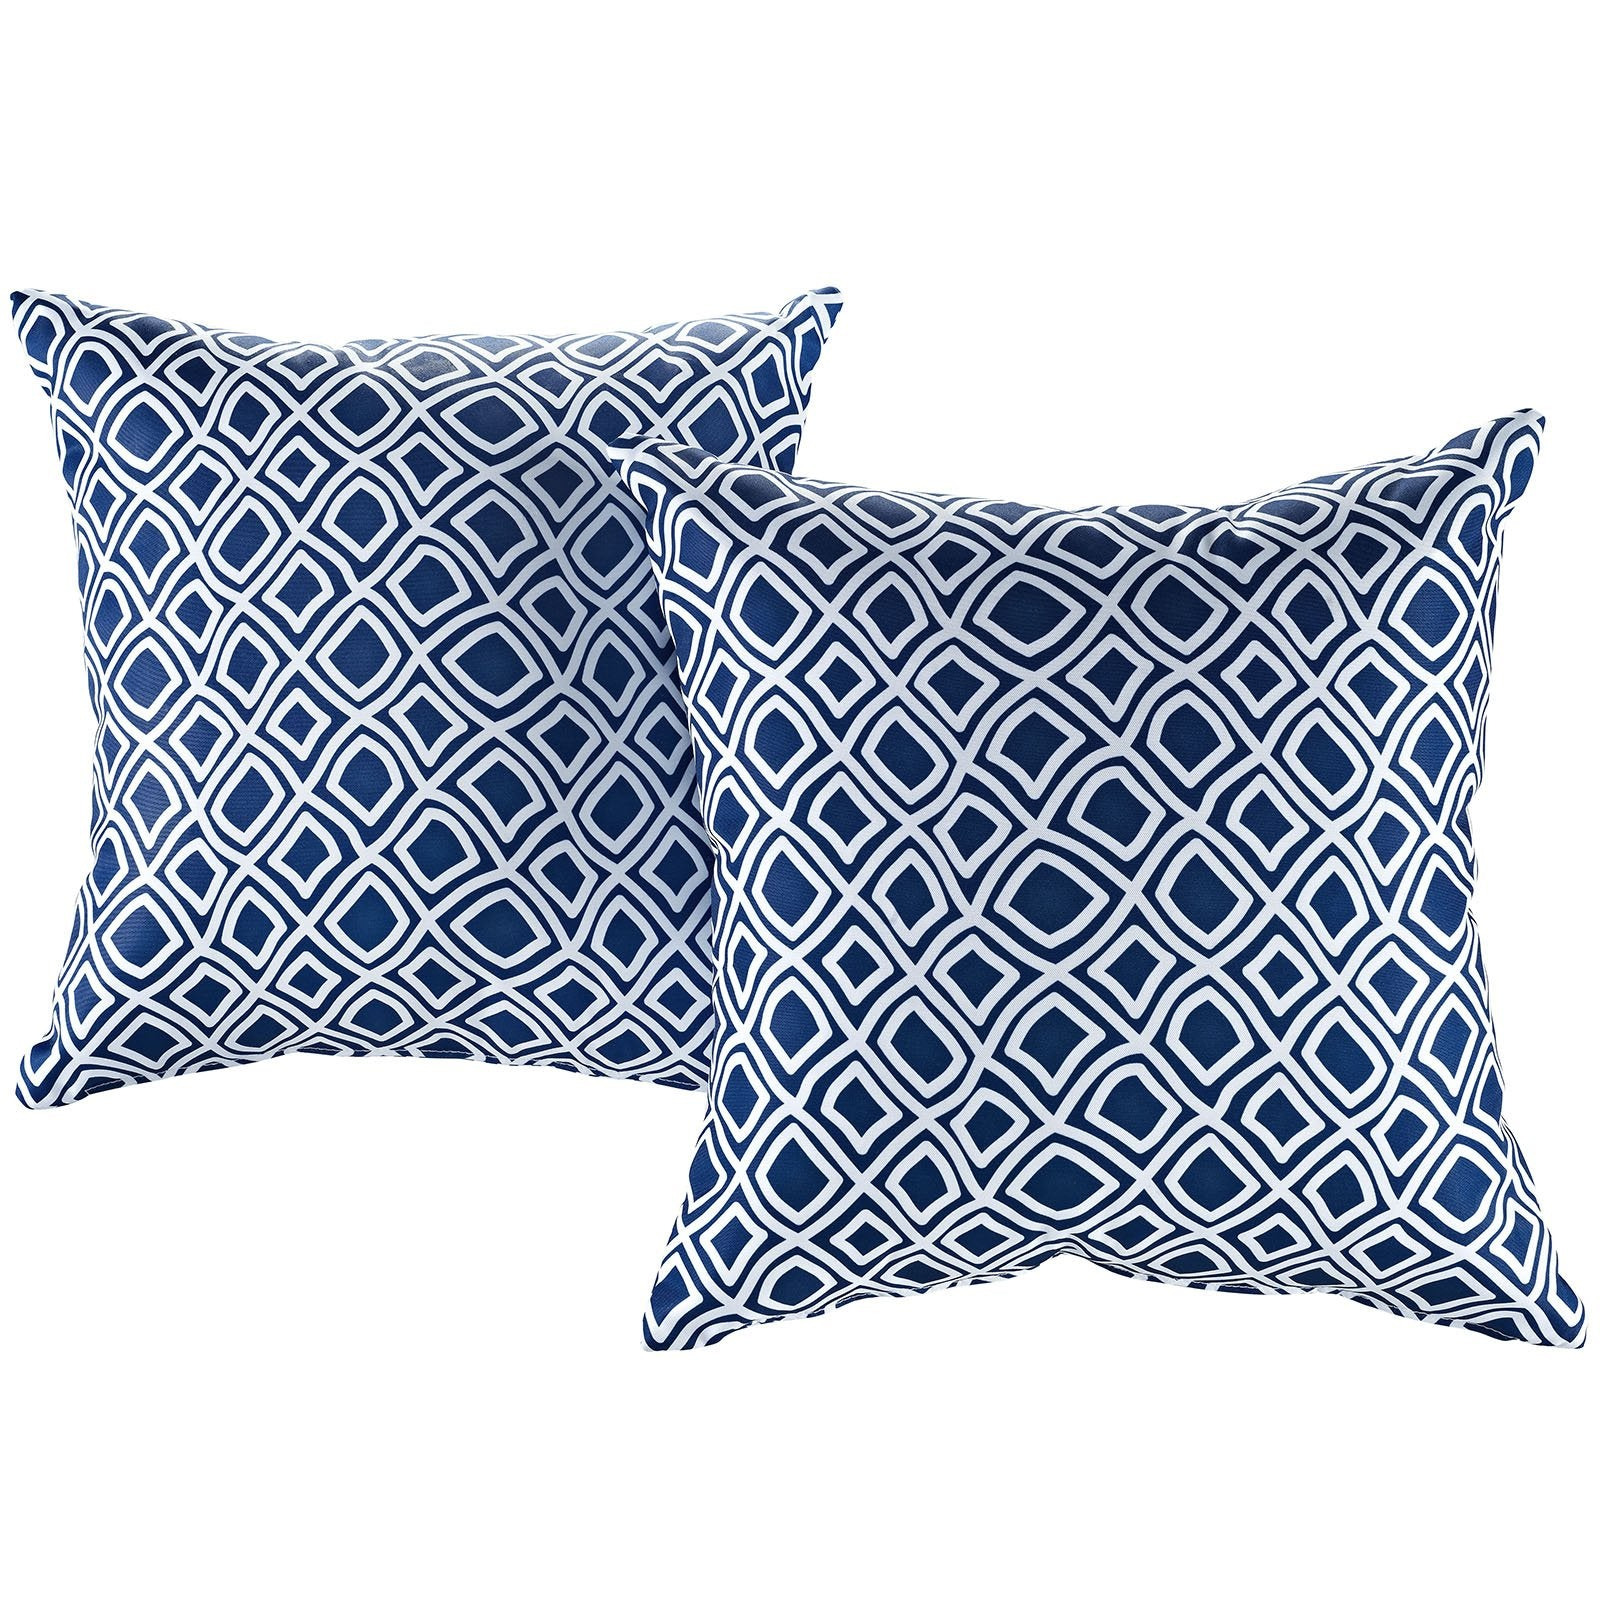 East End Imports Modway Two Piece Outdoor Patio Pillow Set in Balance